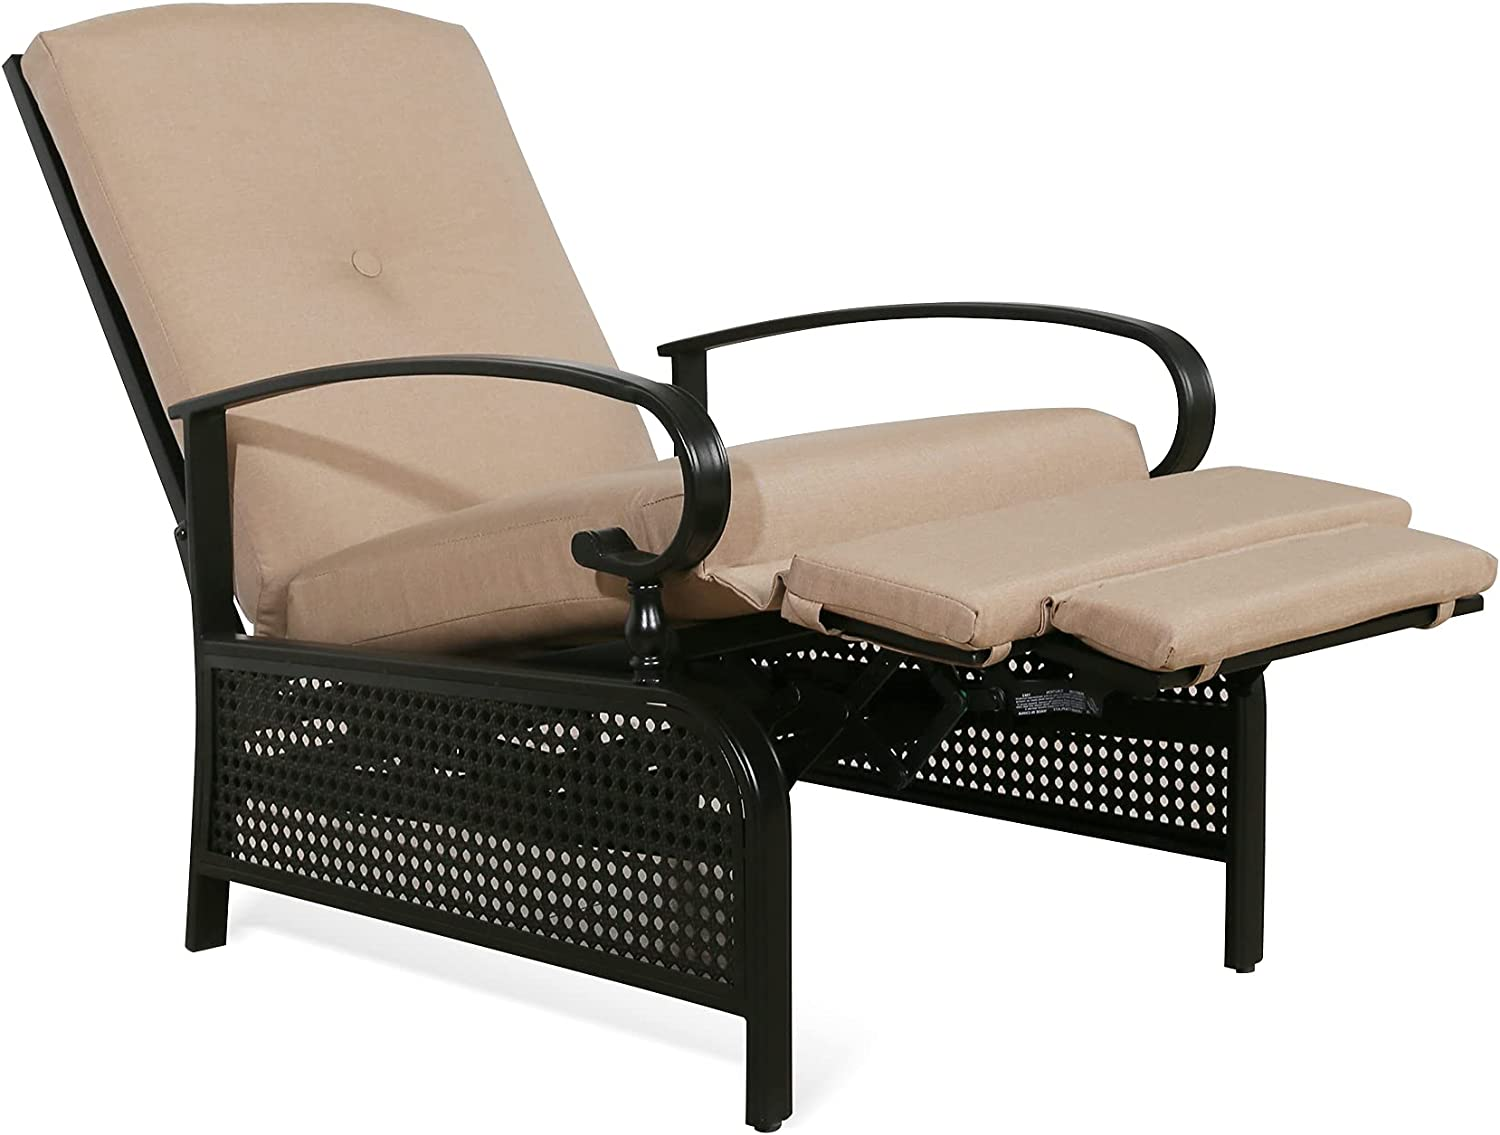 Patio Tree Recommendation Outdoor Recliner Lounge Ch Reclining Popular overseas Adjustable